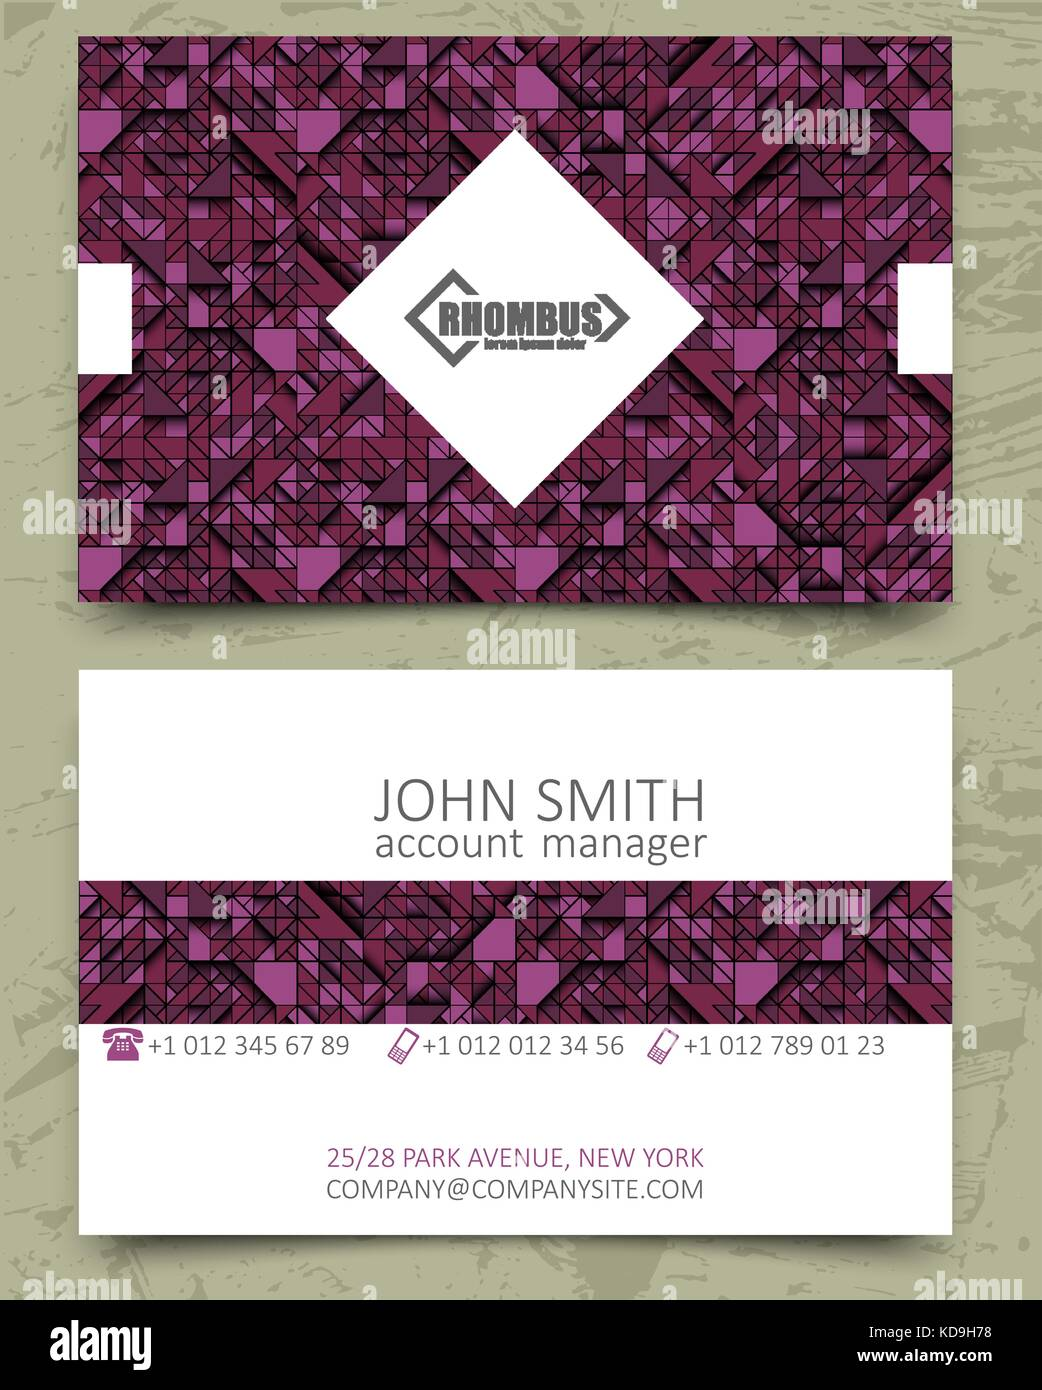 Violet Triangles Modern Business Card Design Template White Rhombus Element With Logo On Pink Purple Background Color Line Volume 3d Geometric